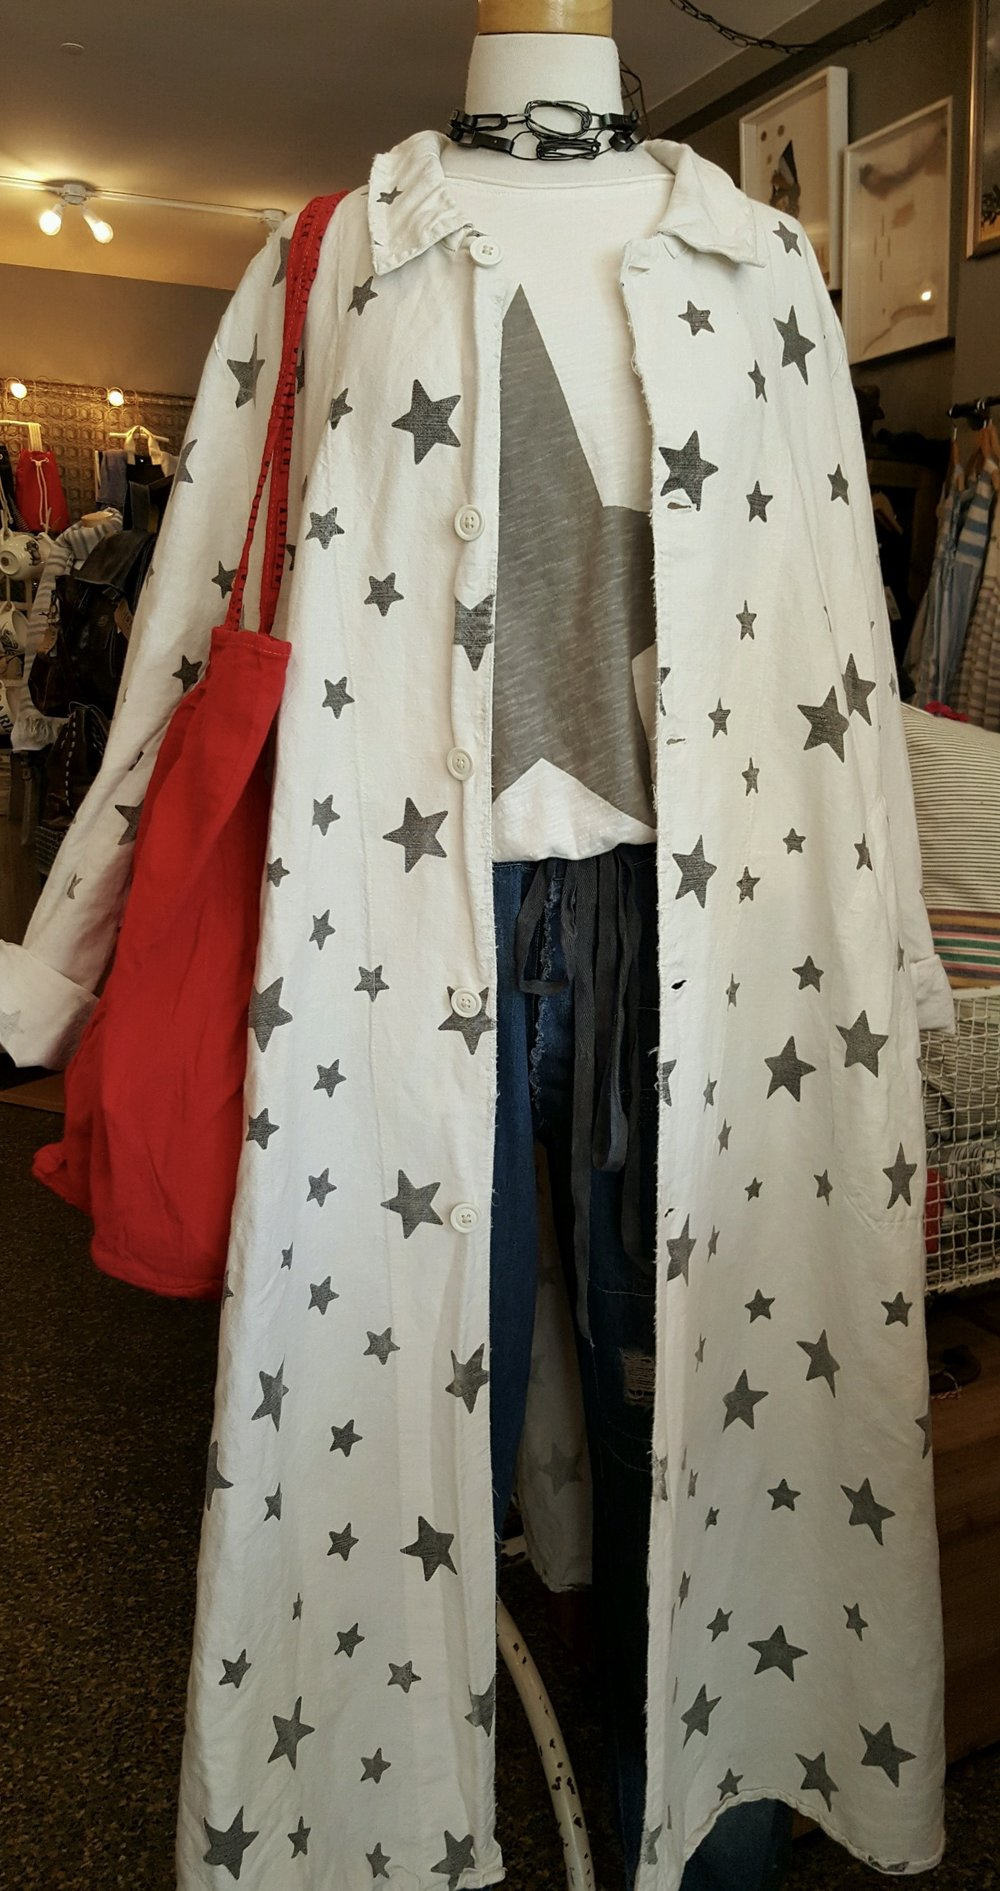 FullSizeRender_4 copy.jpg